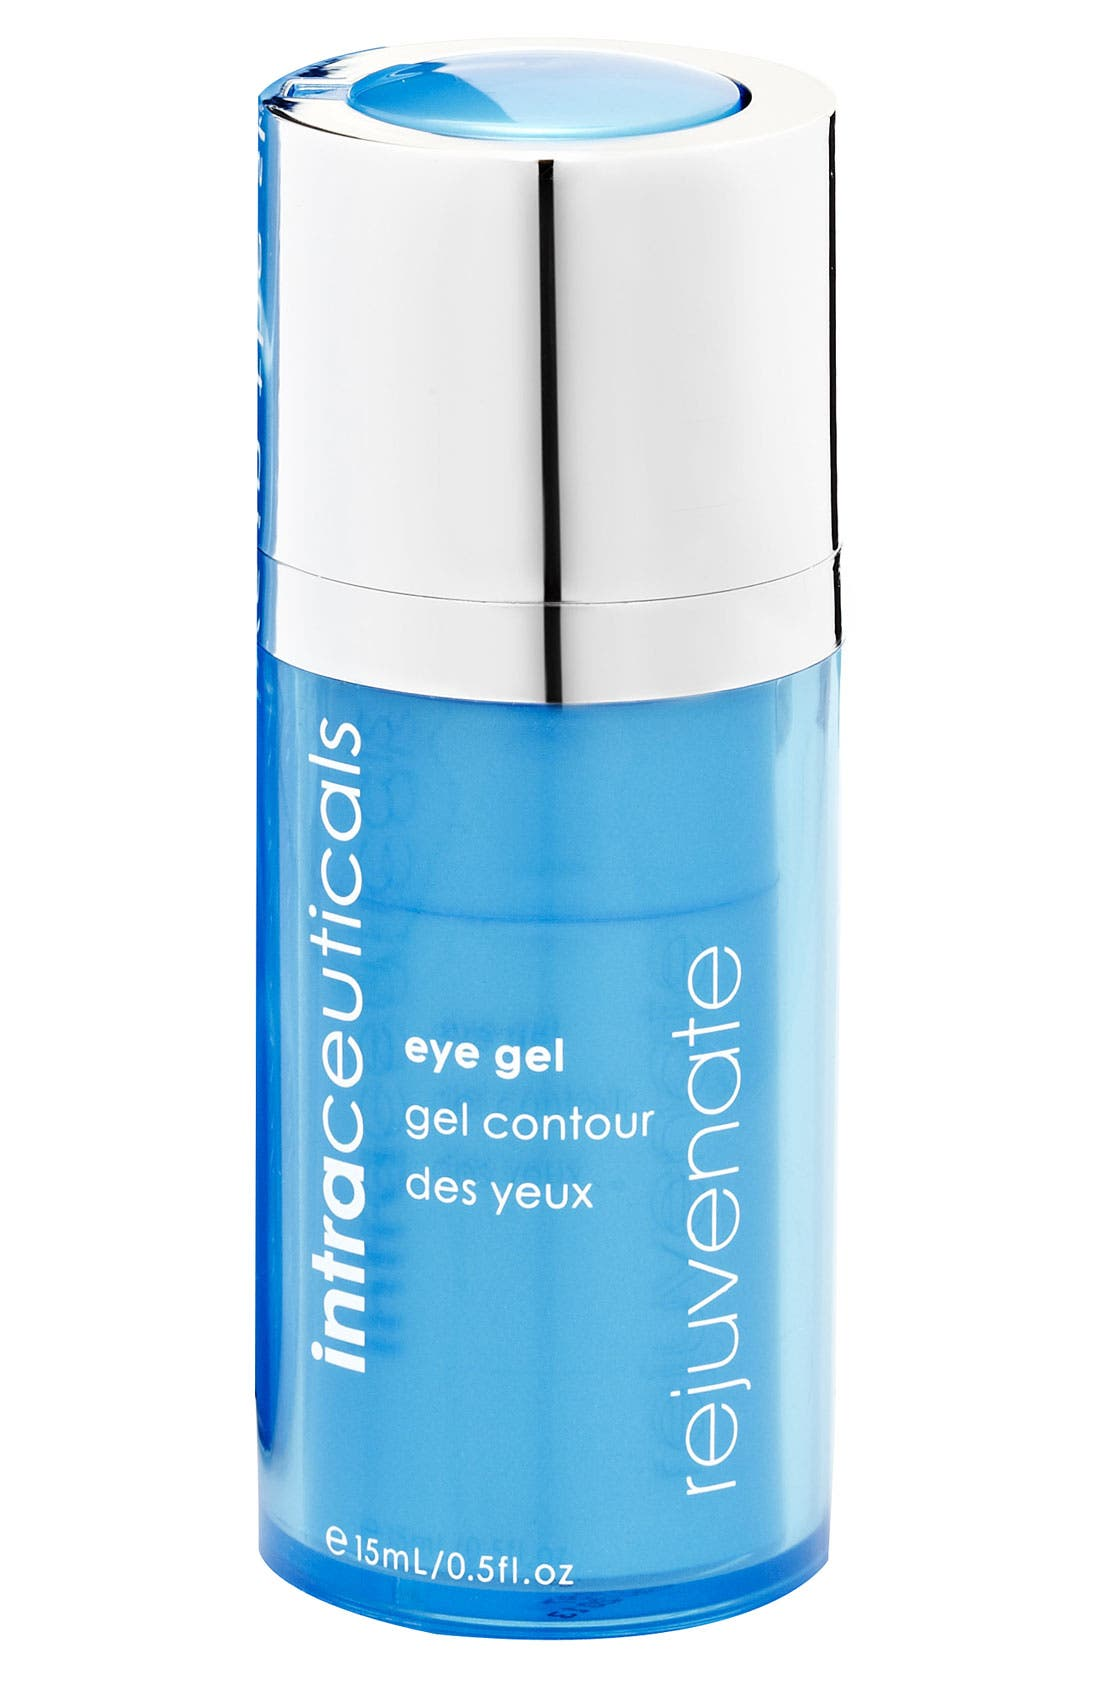 intraceuticals® 'Rejuvenate' Eye Contour Gel